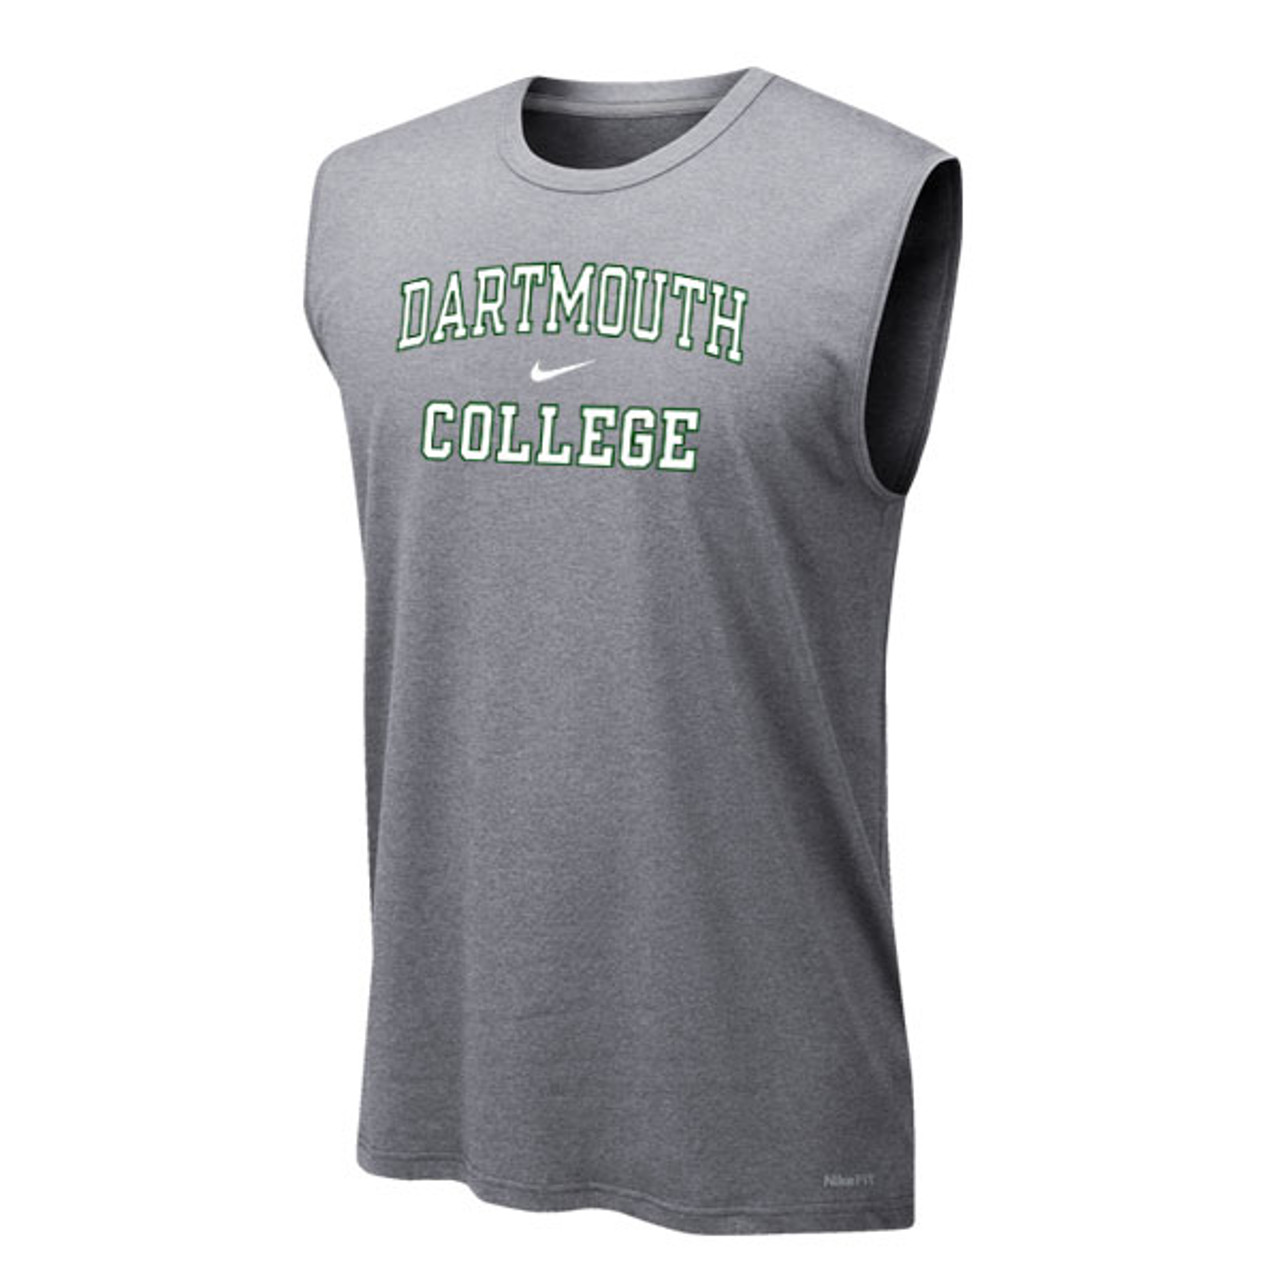 839fd28189952 Men s Nike sleeveless tee with Nike swoosh and  Dartmouth College  across  chest in green